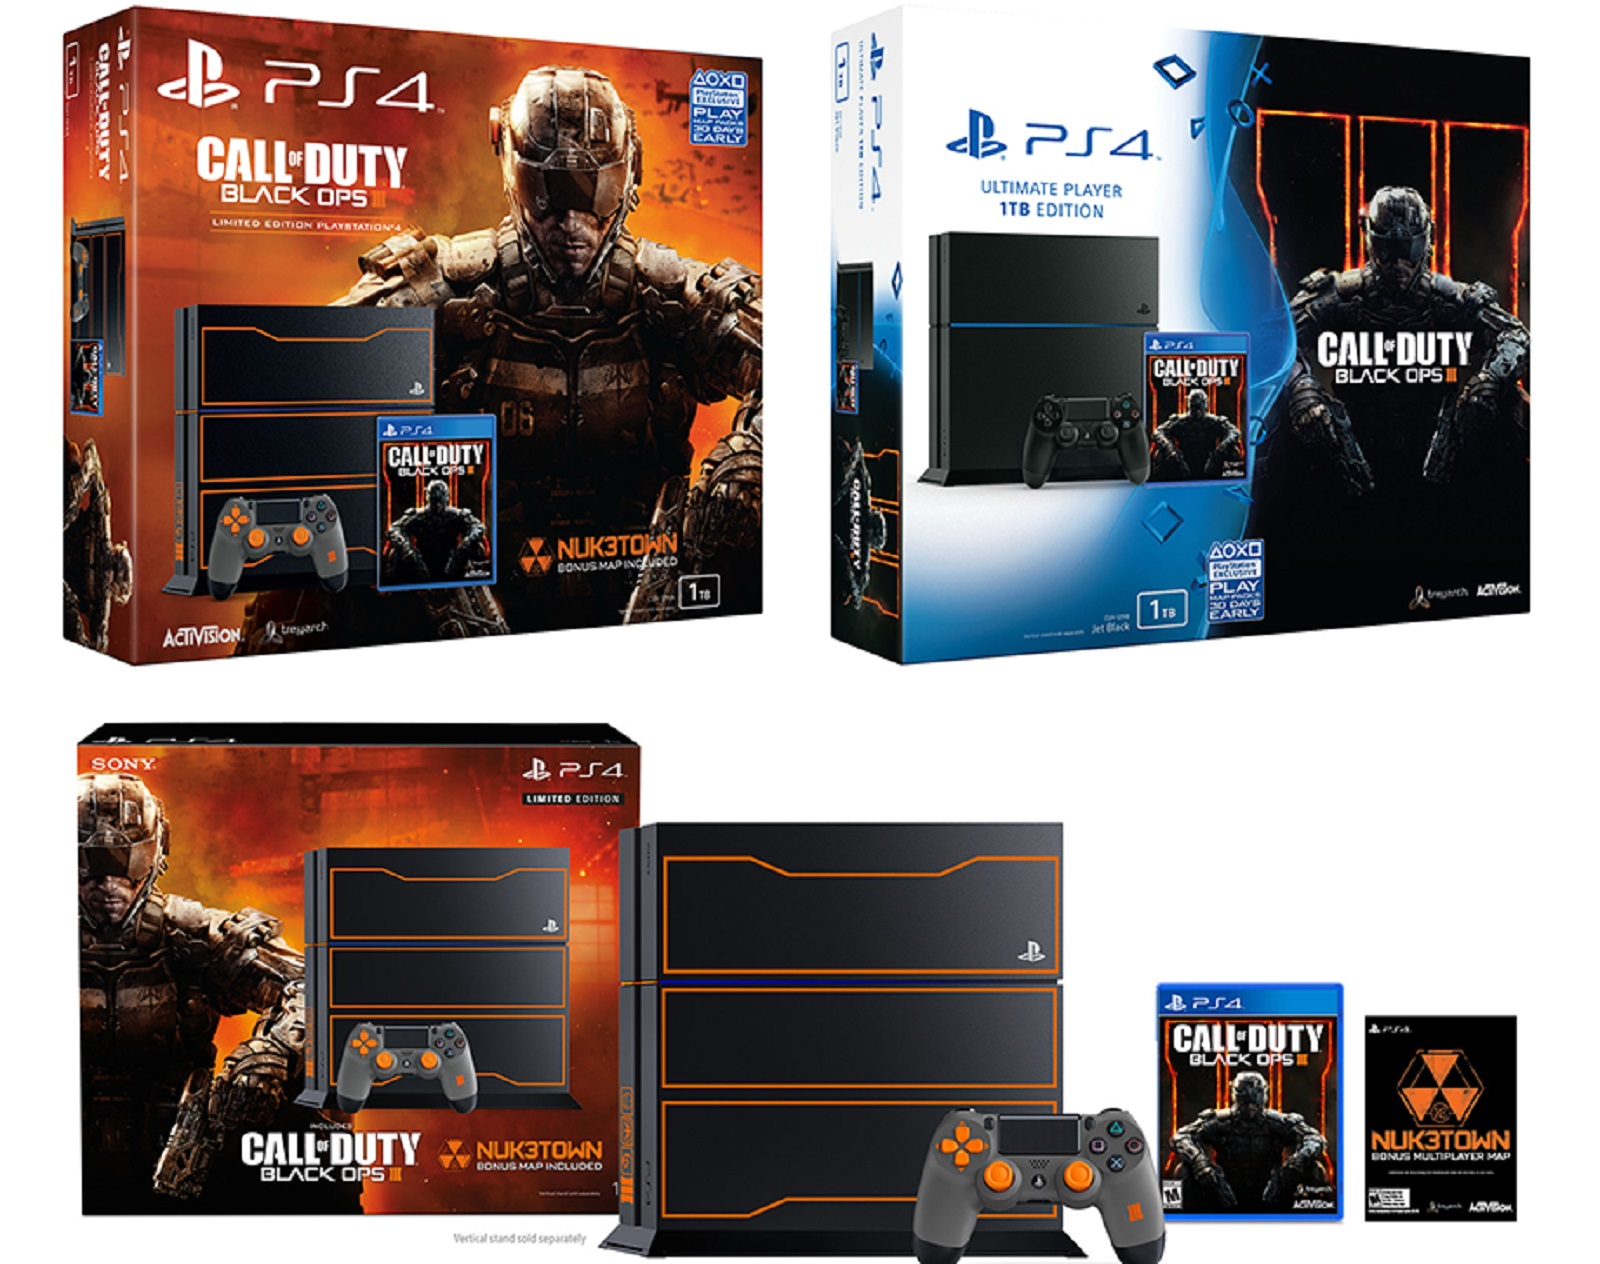 Ps4 Call Of Duty Black Ops 3 Limited 1tb Edition Box Artwork